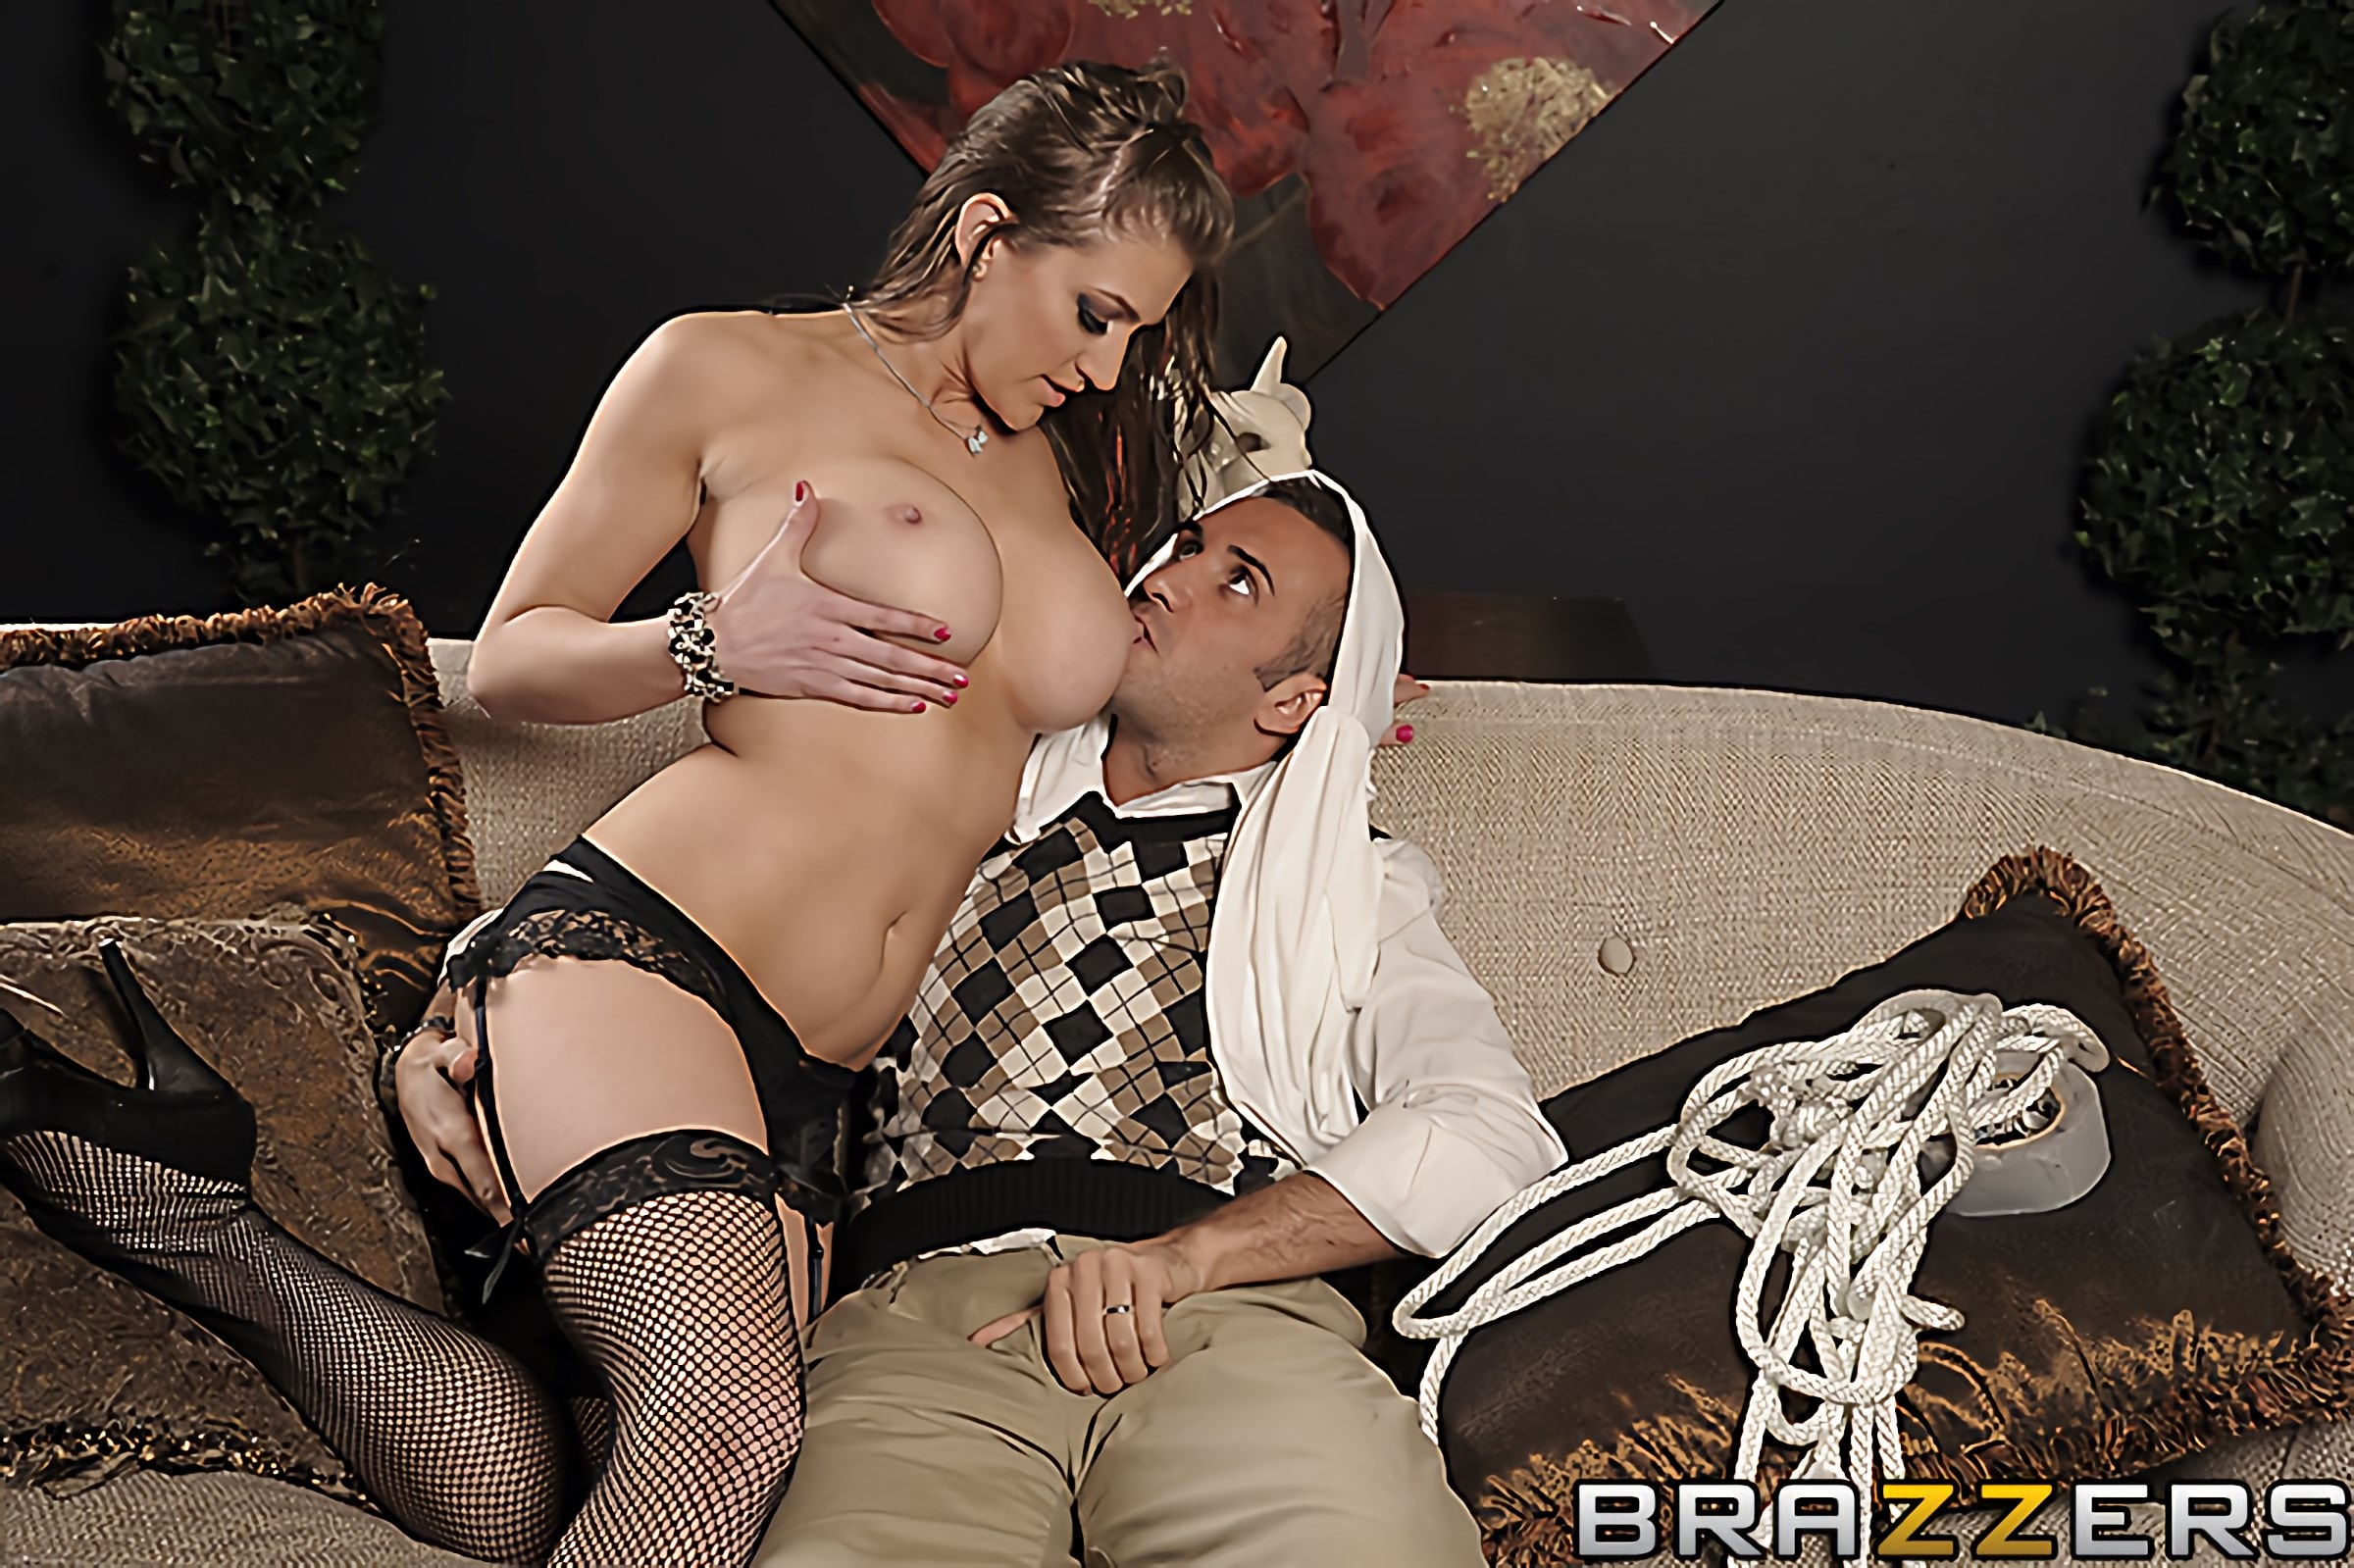 Brazzers 'Slut At Large' starring Eve Laurence (Photo 12)